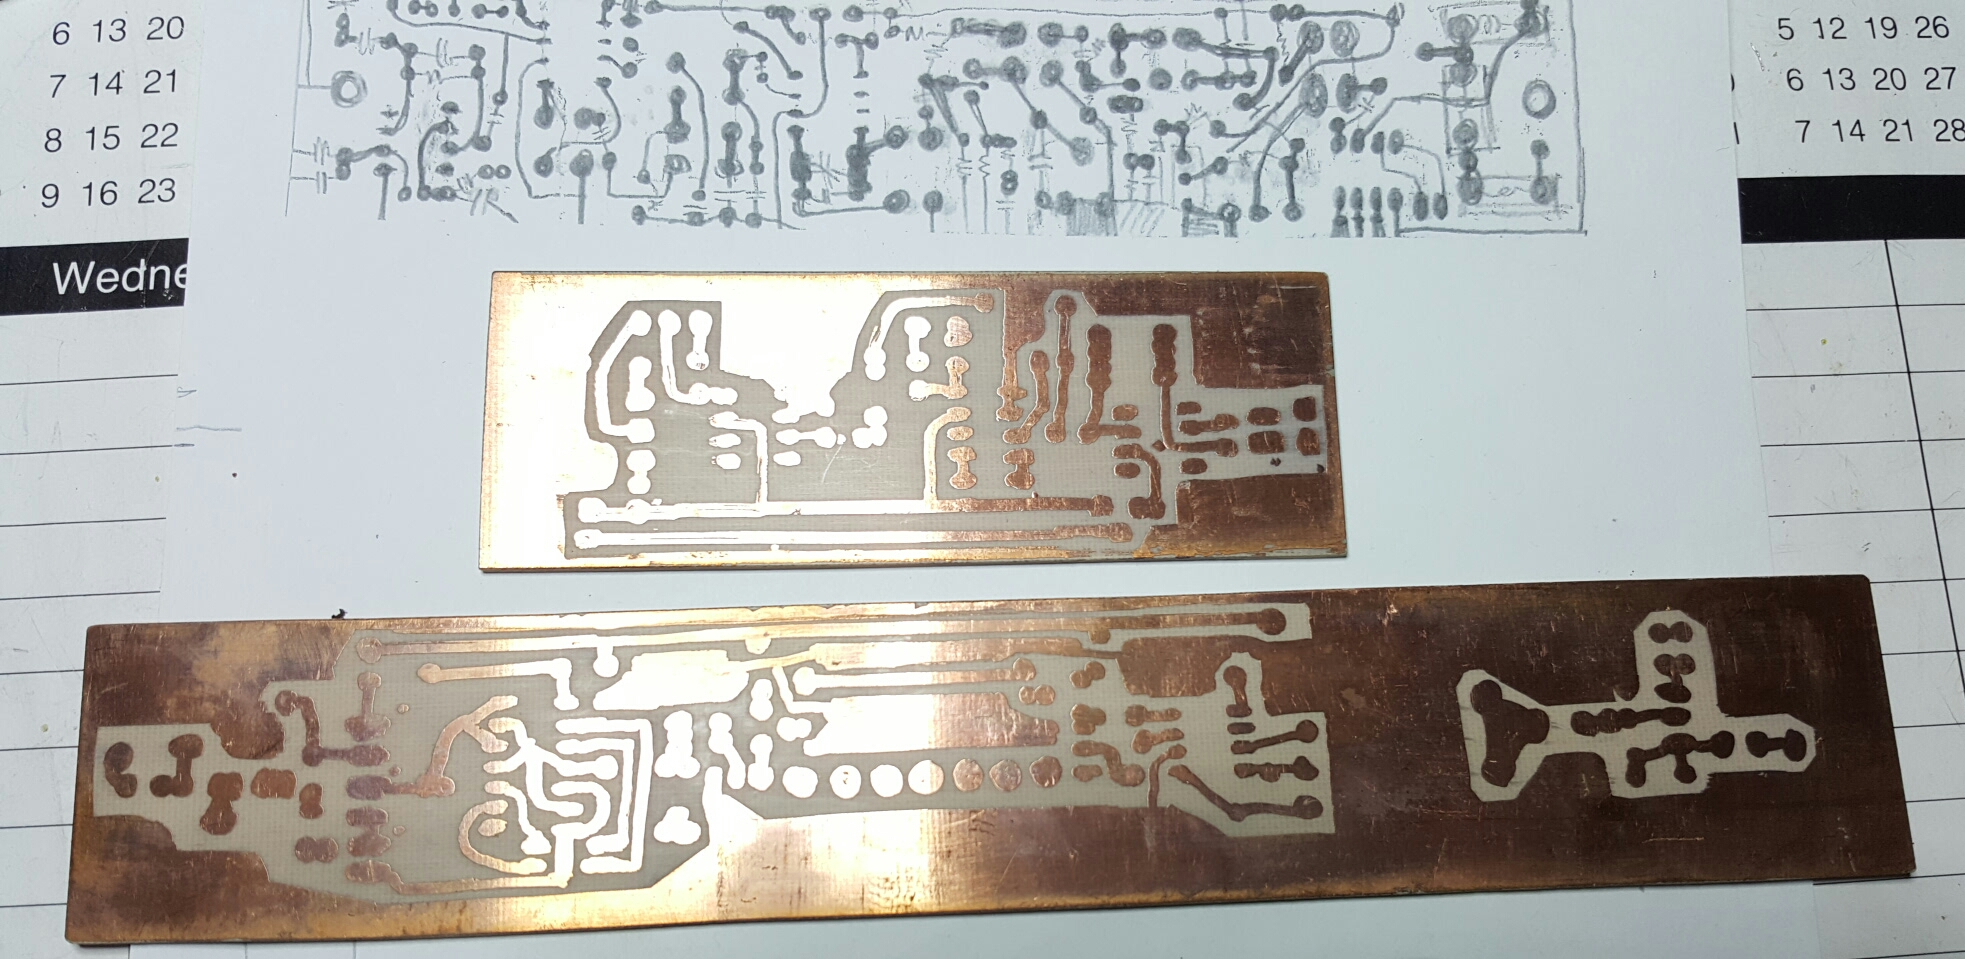 Artisan Printed Circuit Boards Vk3hn How To Make Diy Pcb Basic Audio Sometime In The 1980s I Tried A Copper Side Up Board Dispensing With Drilled Holes Free Hand Drawing On Painting And Etching